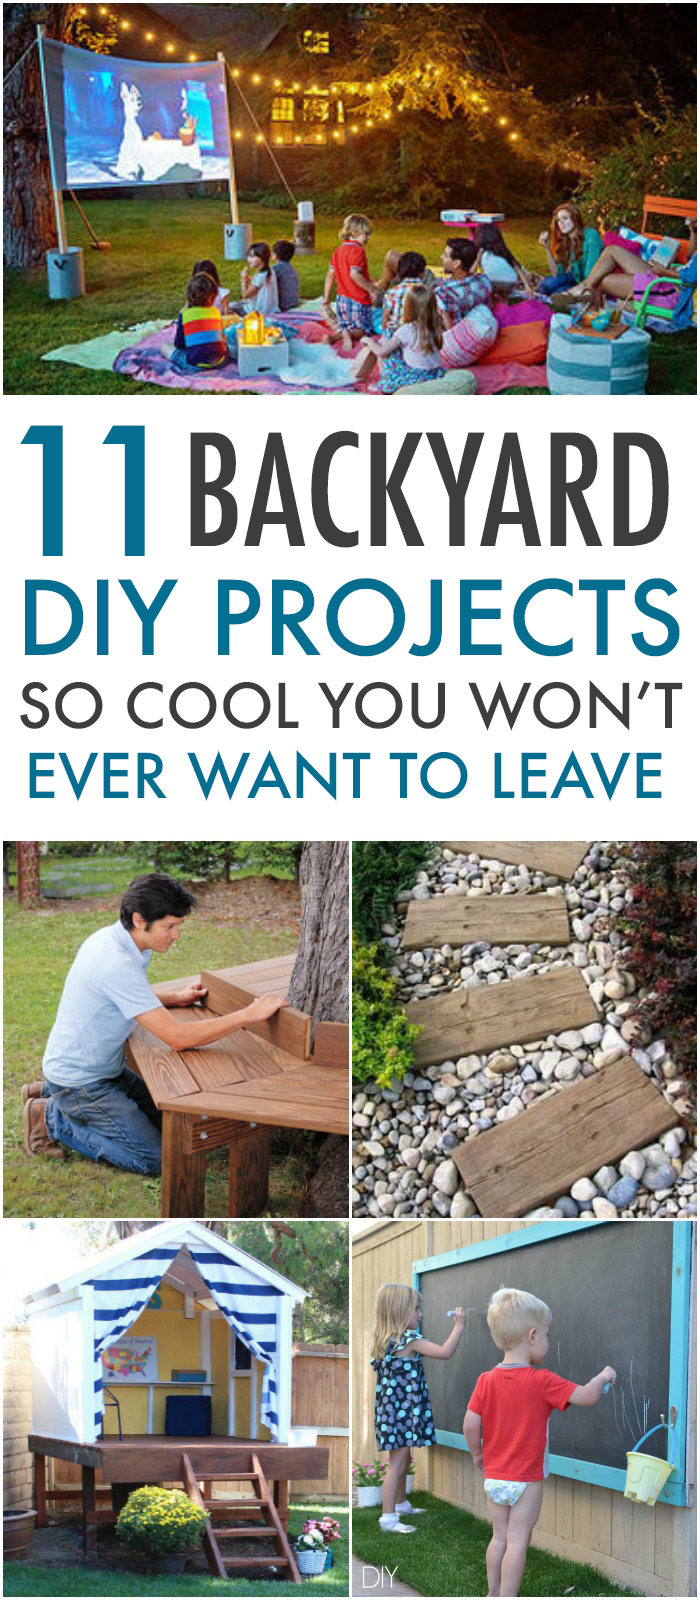 11 yard diy u0027s so cool you won u0027t want to leave yards summer and